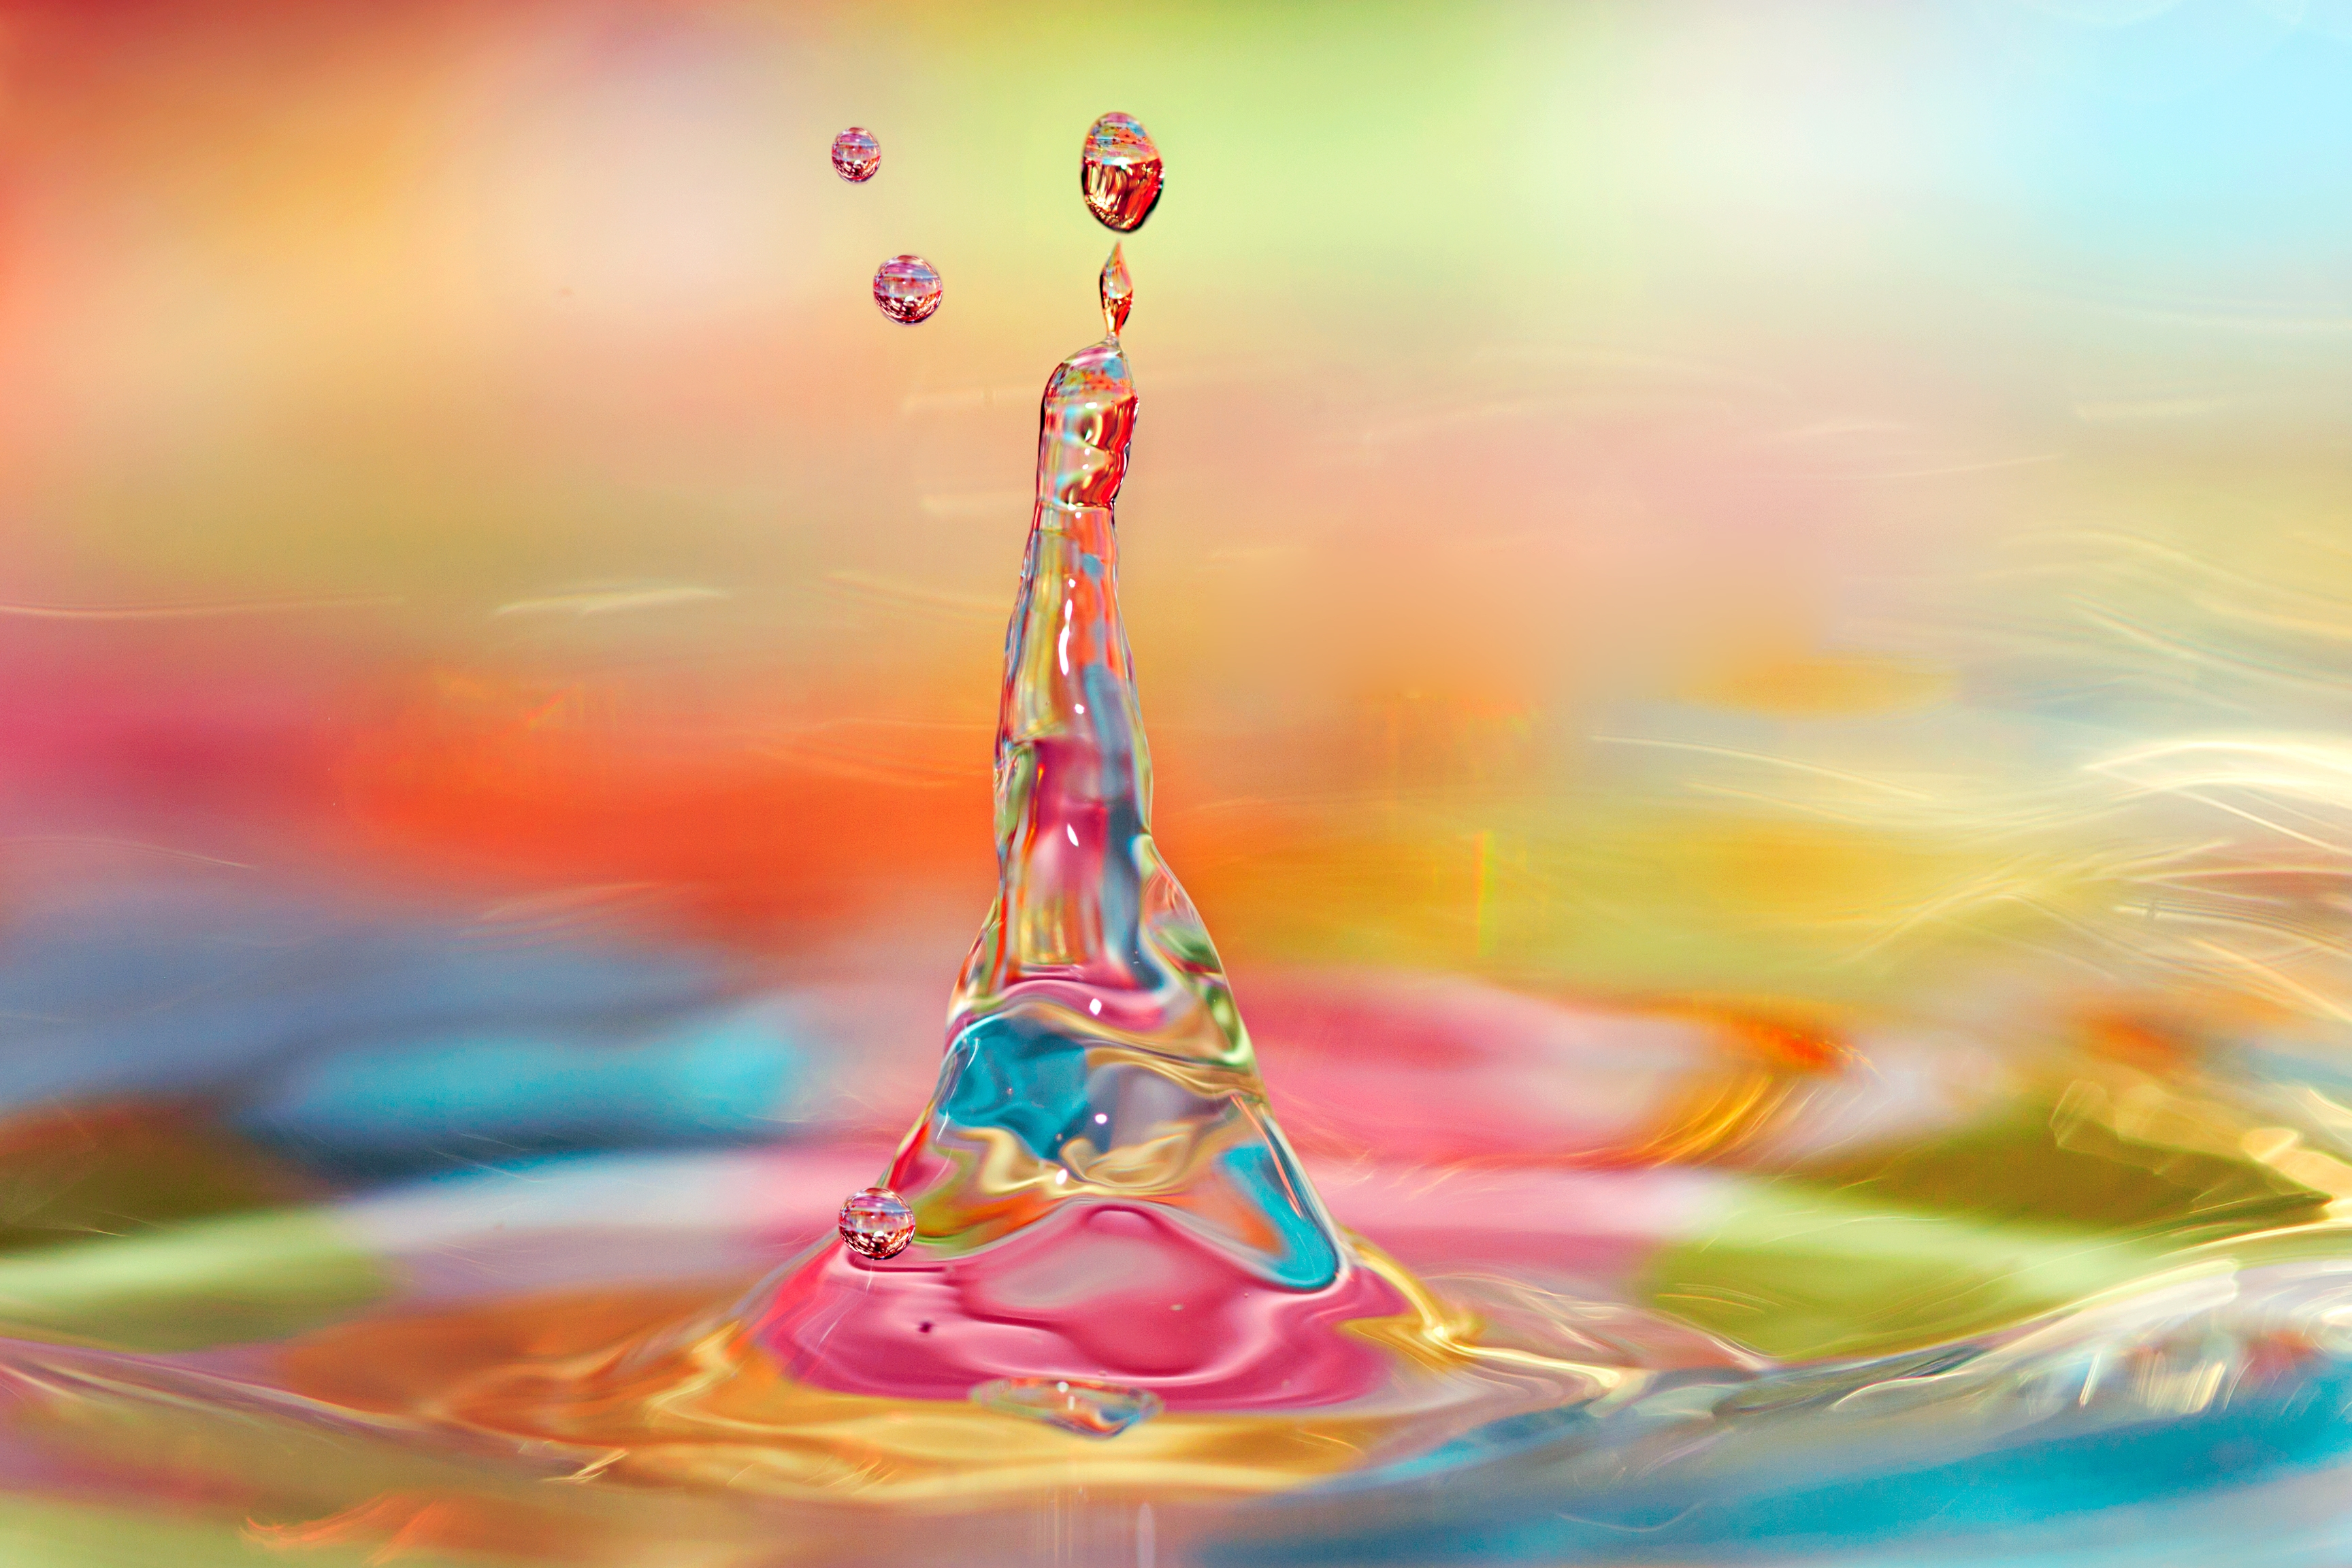 141511 download wallpaper Abstract, Drop, Water, Liquid, Spray, Splash screensavers and pictures for free